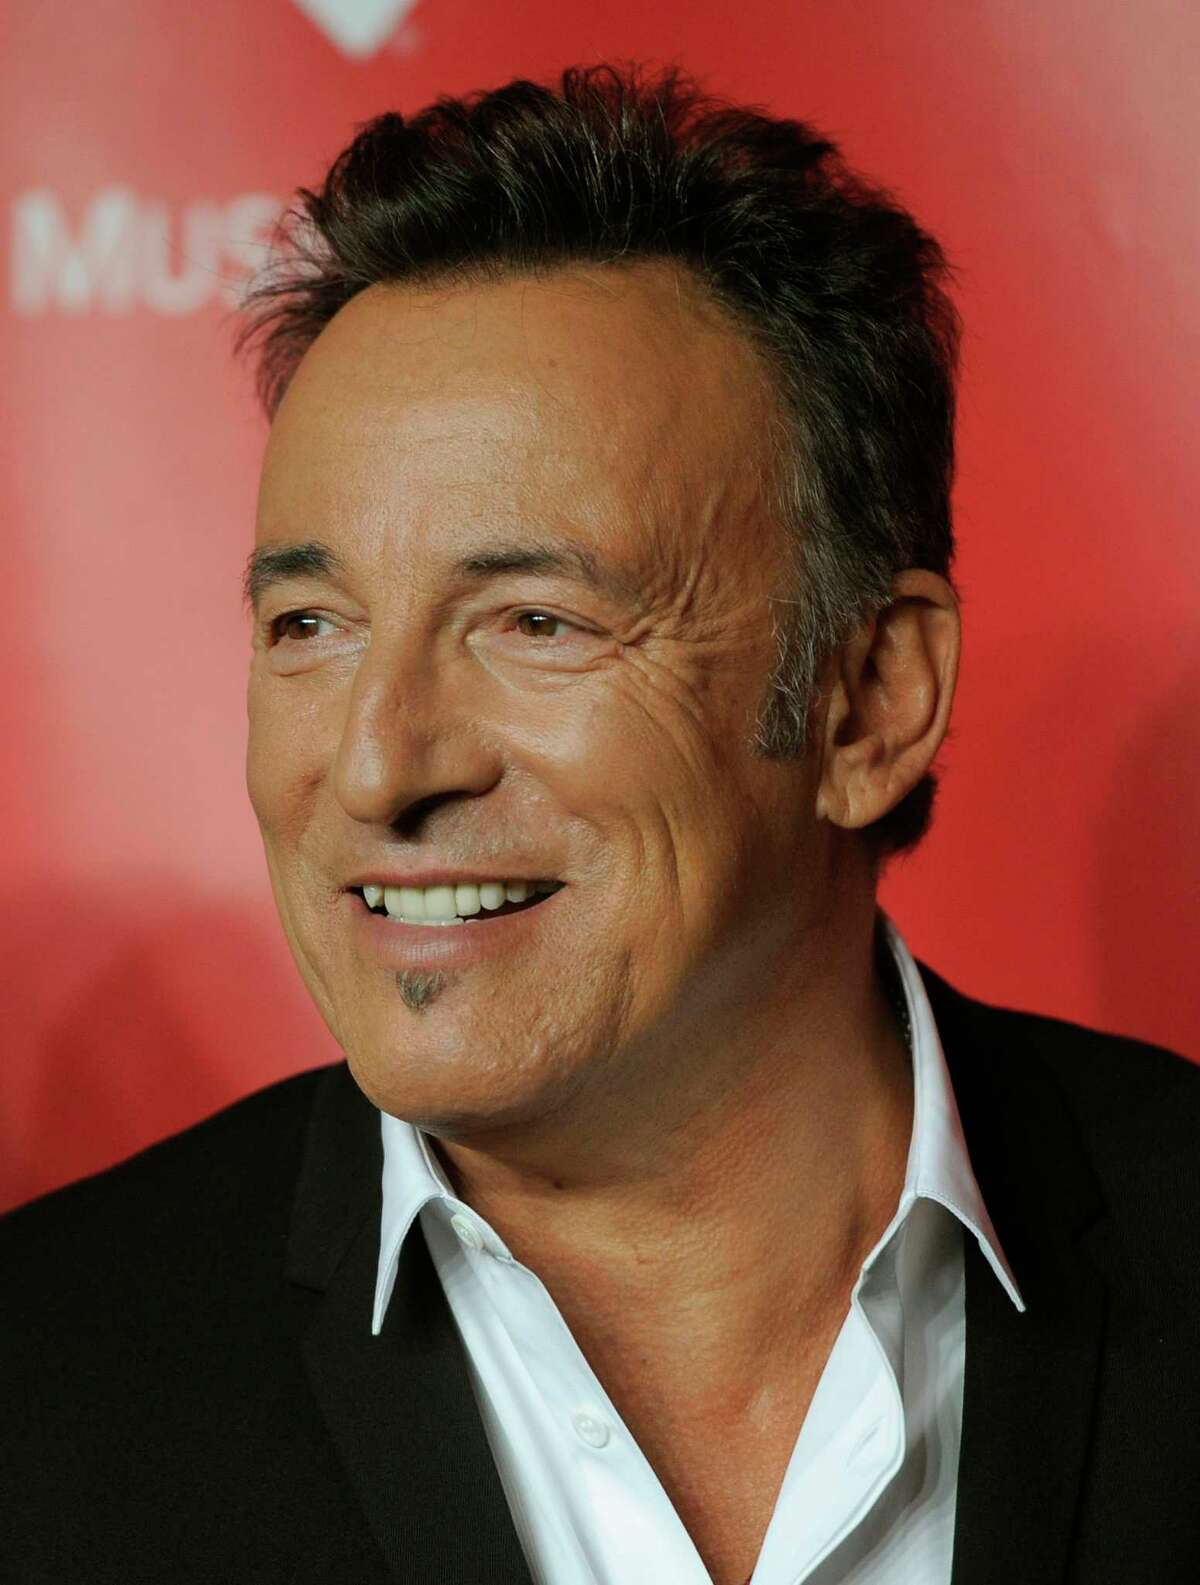 Honoree Bruce Springsteen arrives at his MusiCares Person of the Year tribute at the Los Angeles Convention Center on Friday Feb. 8, 2013, in Los Angeles. (Photo by Chris Pizzello/Invision/AP)